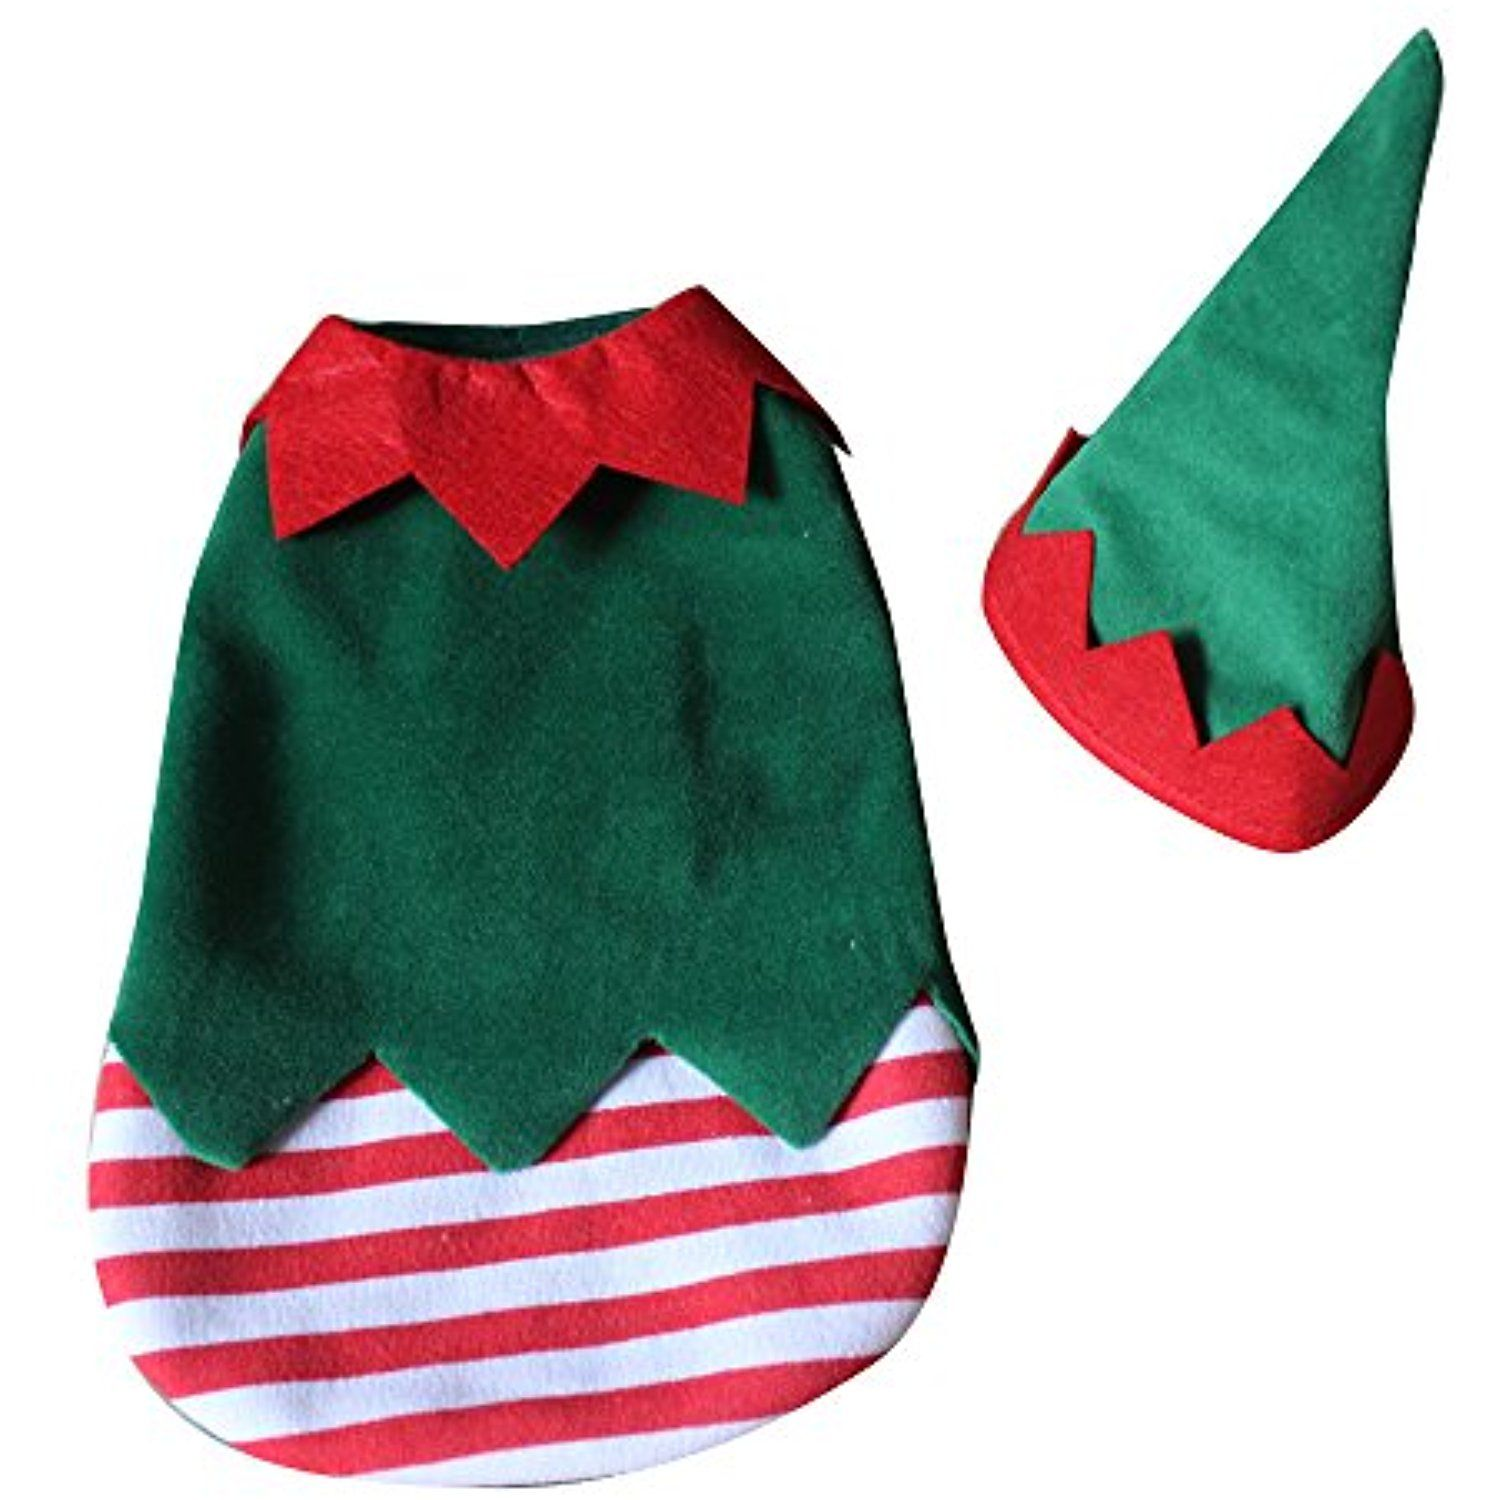 S-Lifeeling Christmas Clown Outfit Dog Costumes Holiday Halloween Pet Clothes Soft Comfortable Dog Clothes ** Read more at the image link. (This is an affiliate link) #DogApparelAccessories